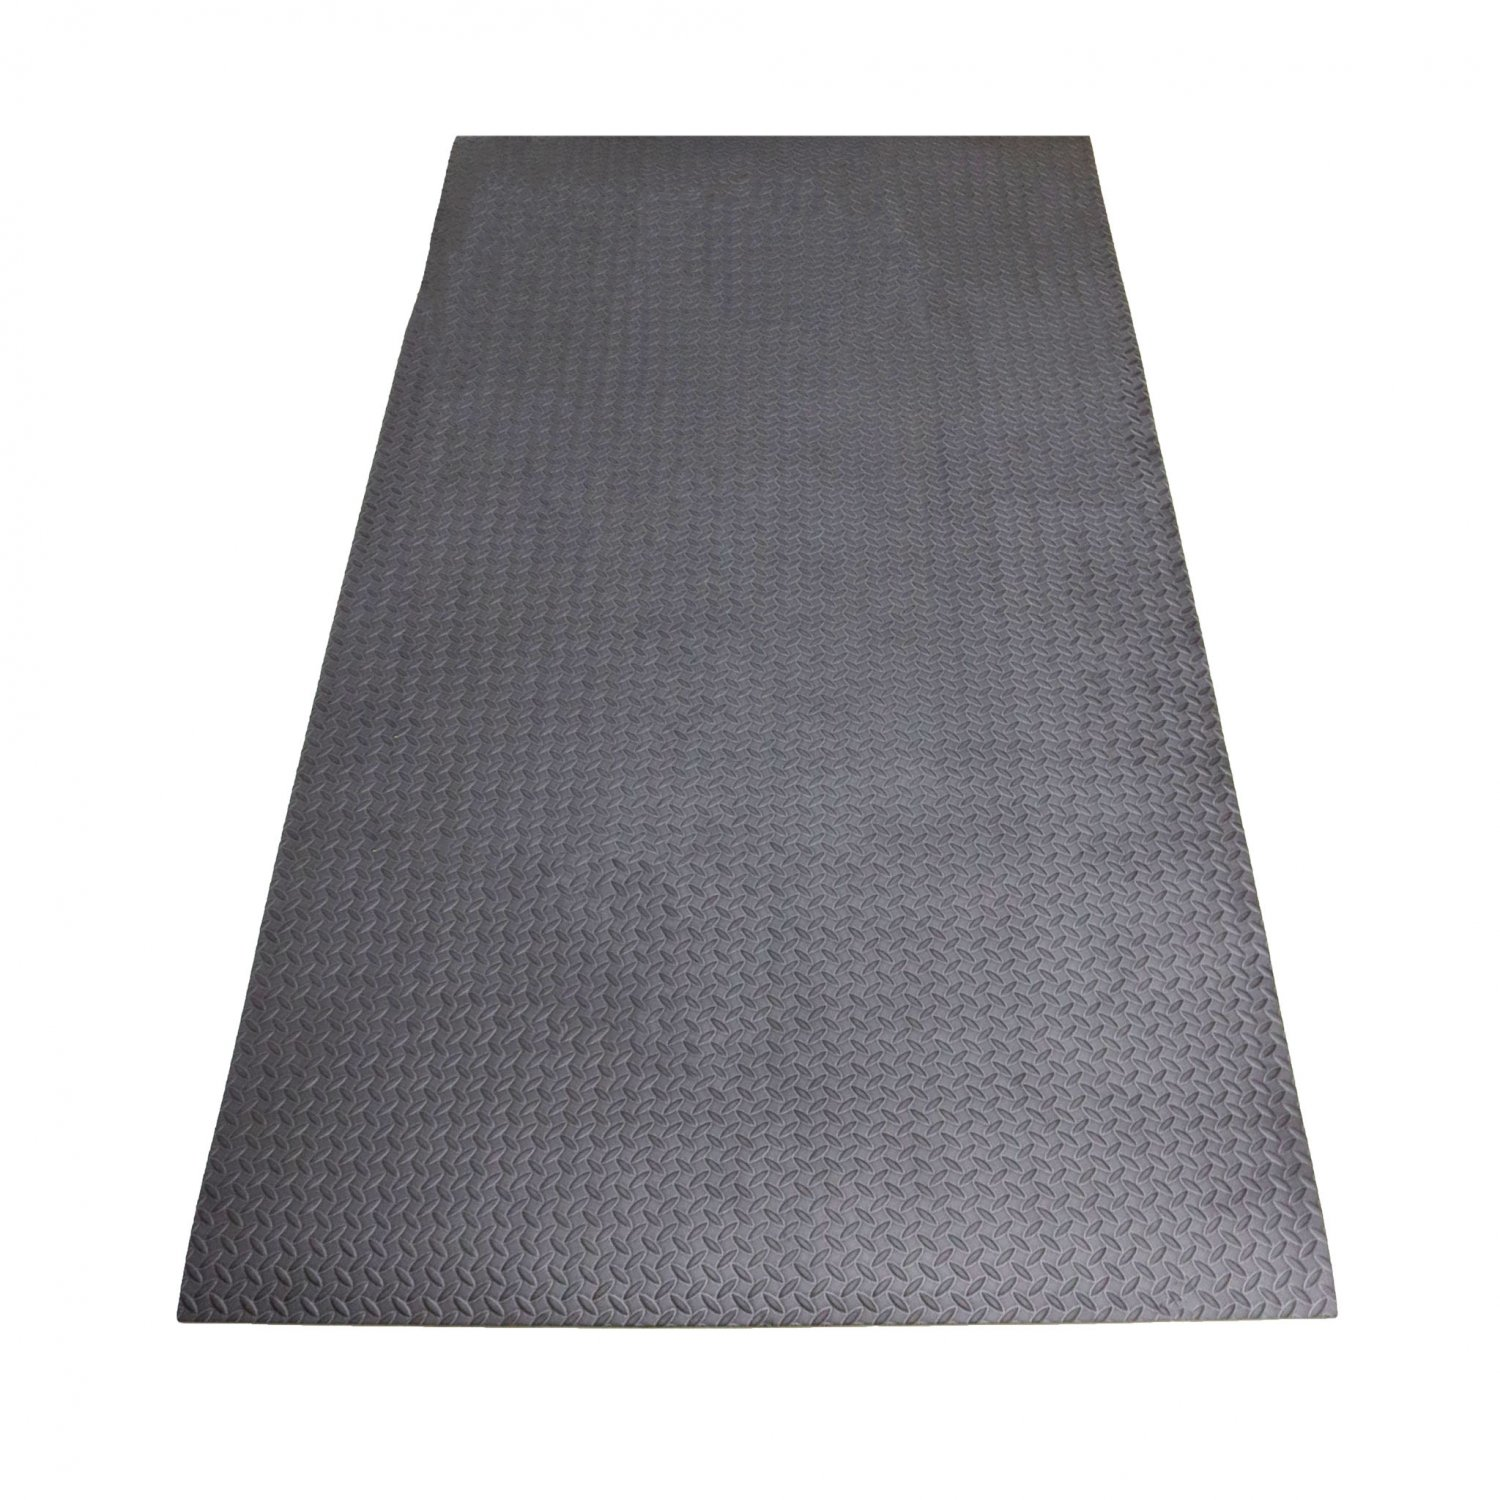 Large multi purpose safety eva floor mat play garage gym